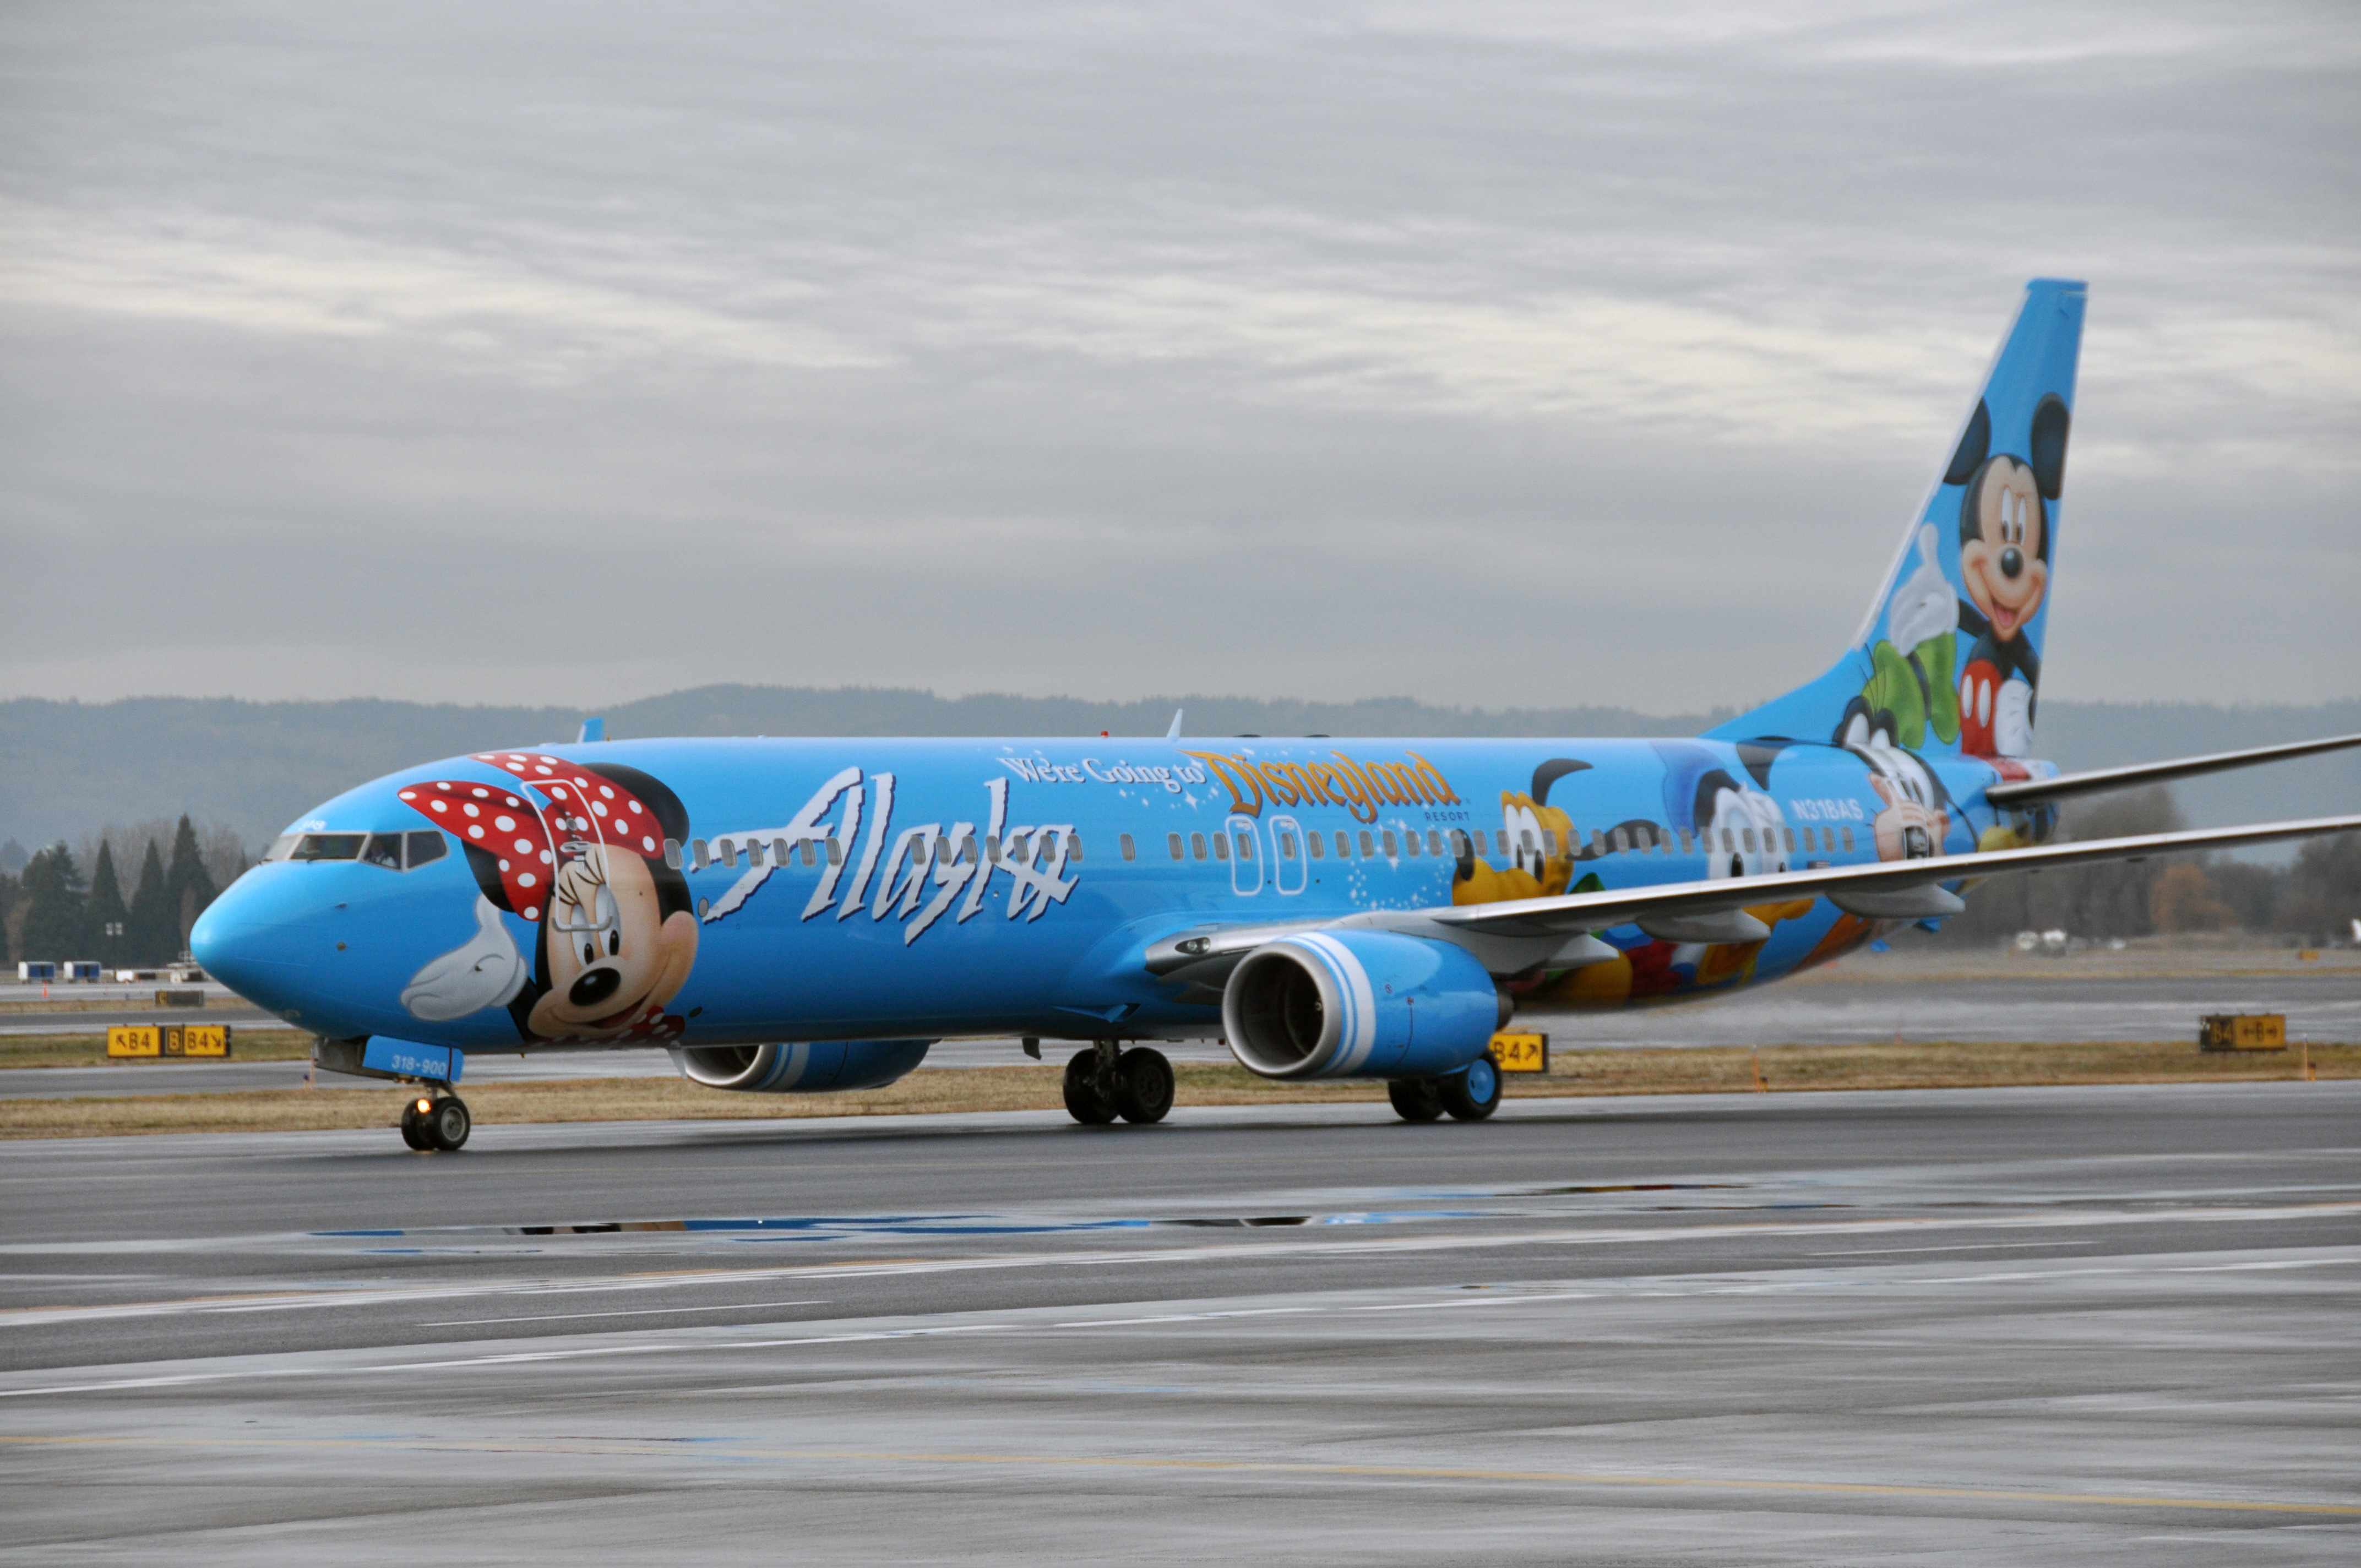 Alaska Airlines Introduces Its First Boeing 737 900